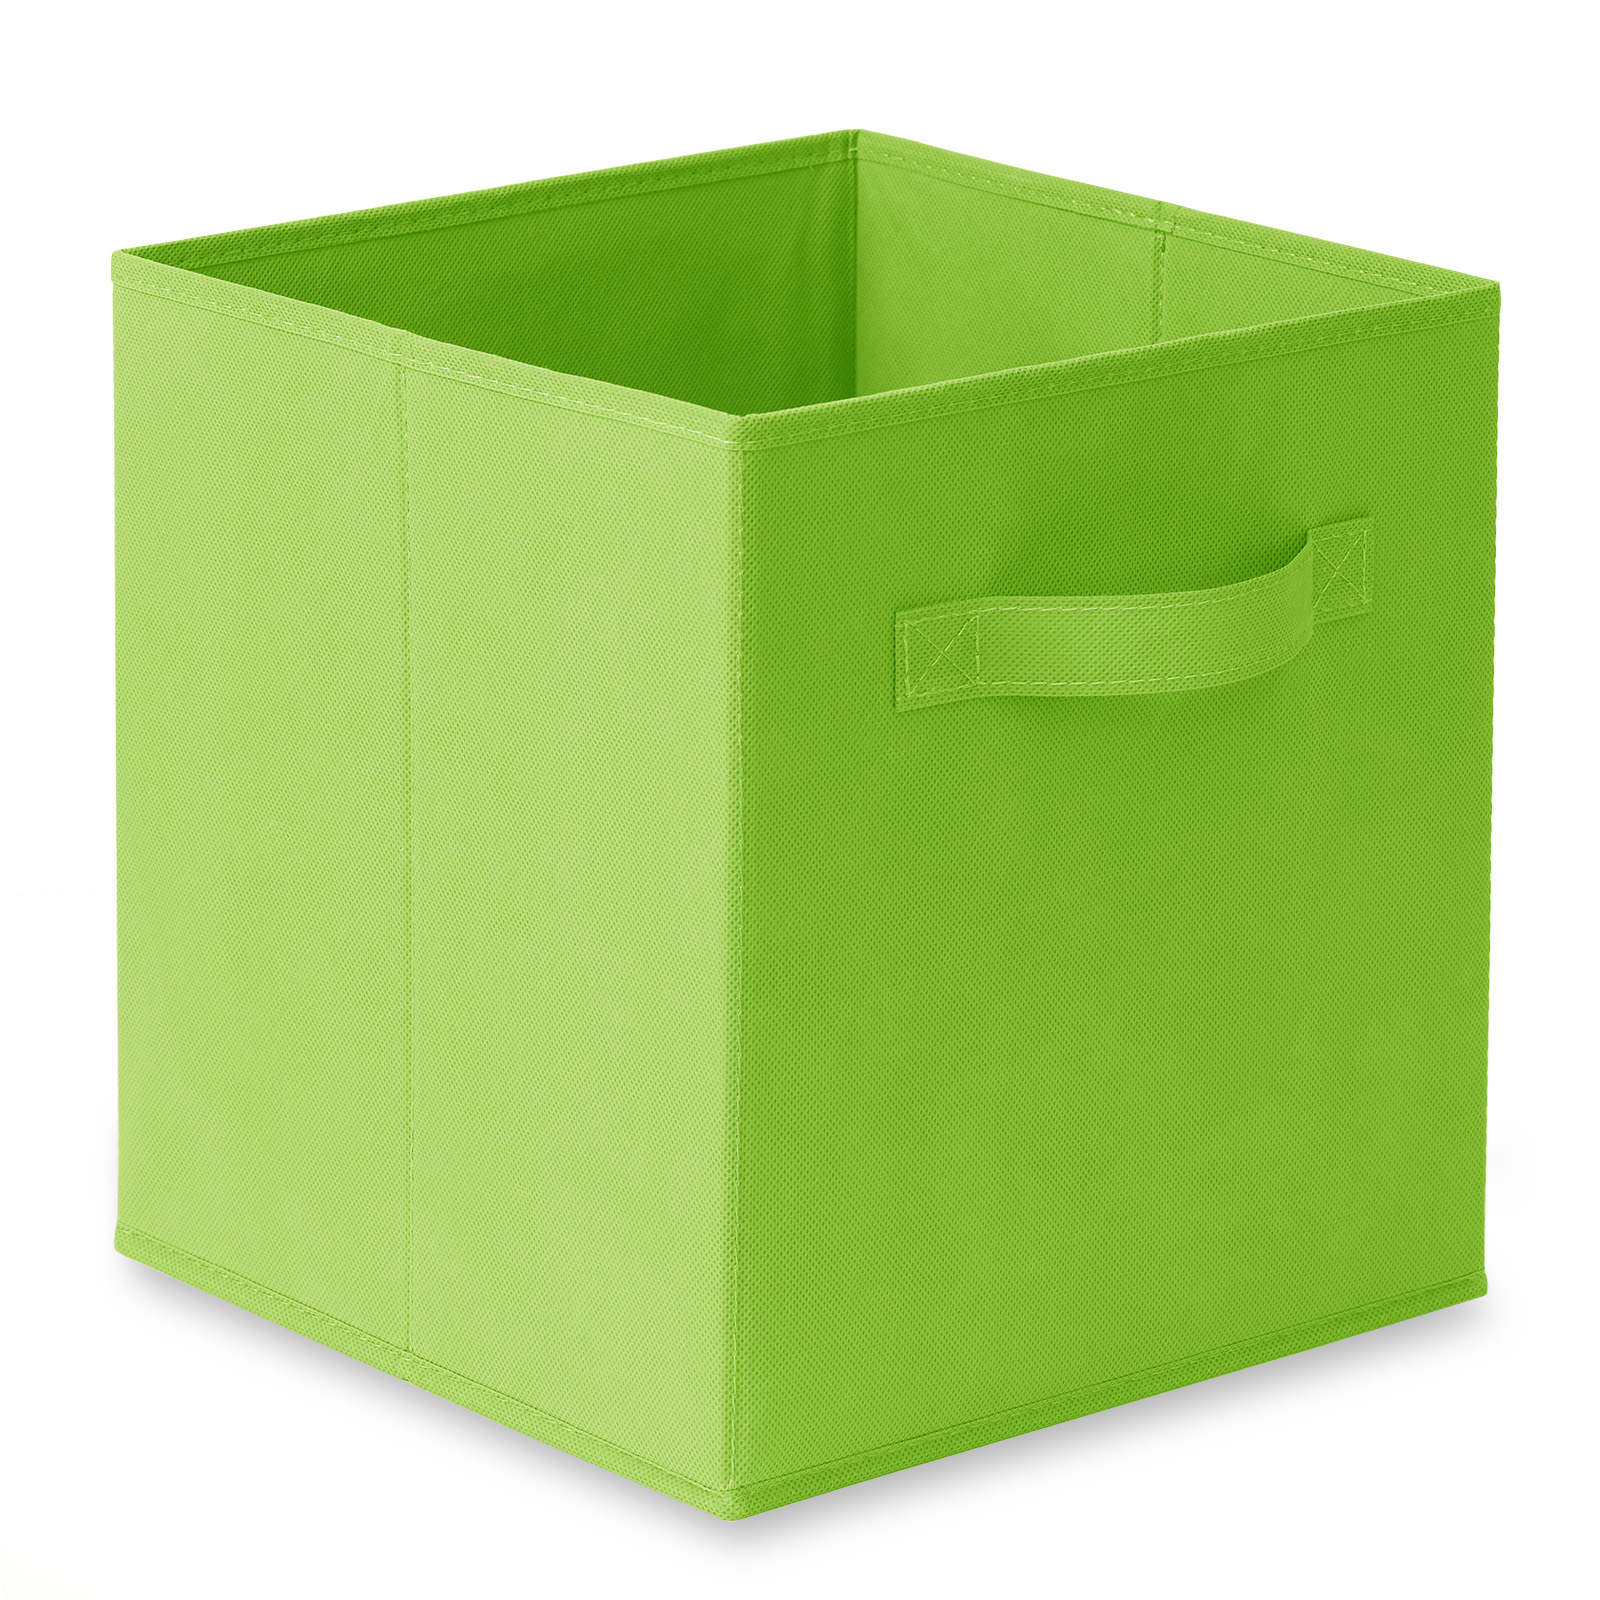 6-Collapsible-Foldable-Cloth-Fabric-Cubby-Cube-Storage-Bins-Baskets-for-Shelves thumbnail 45